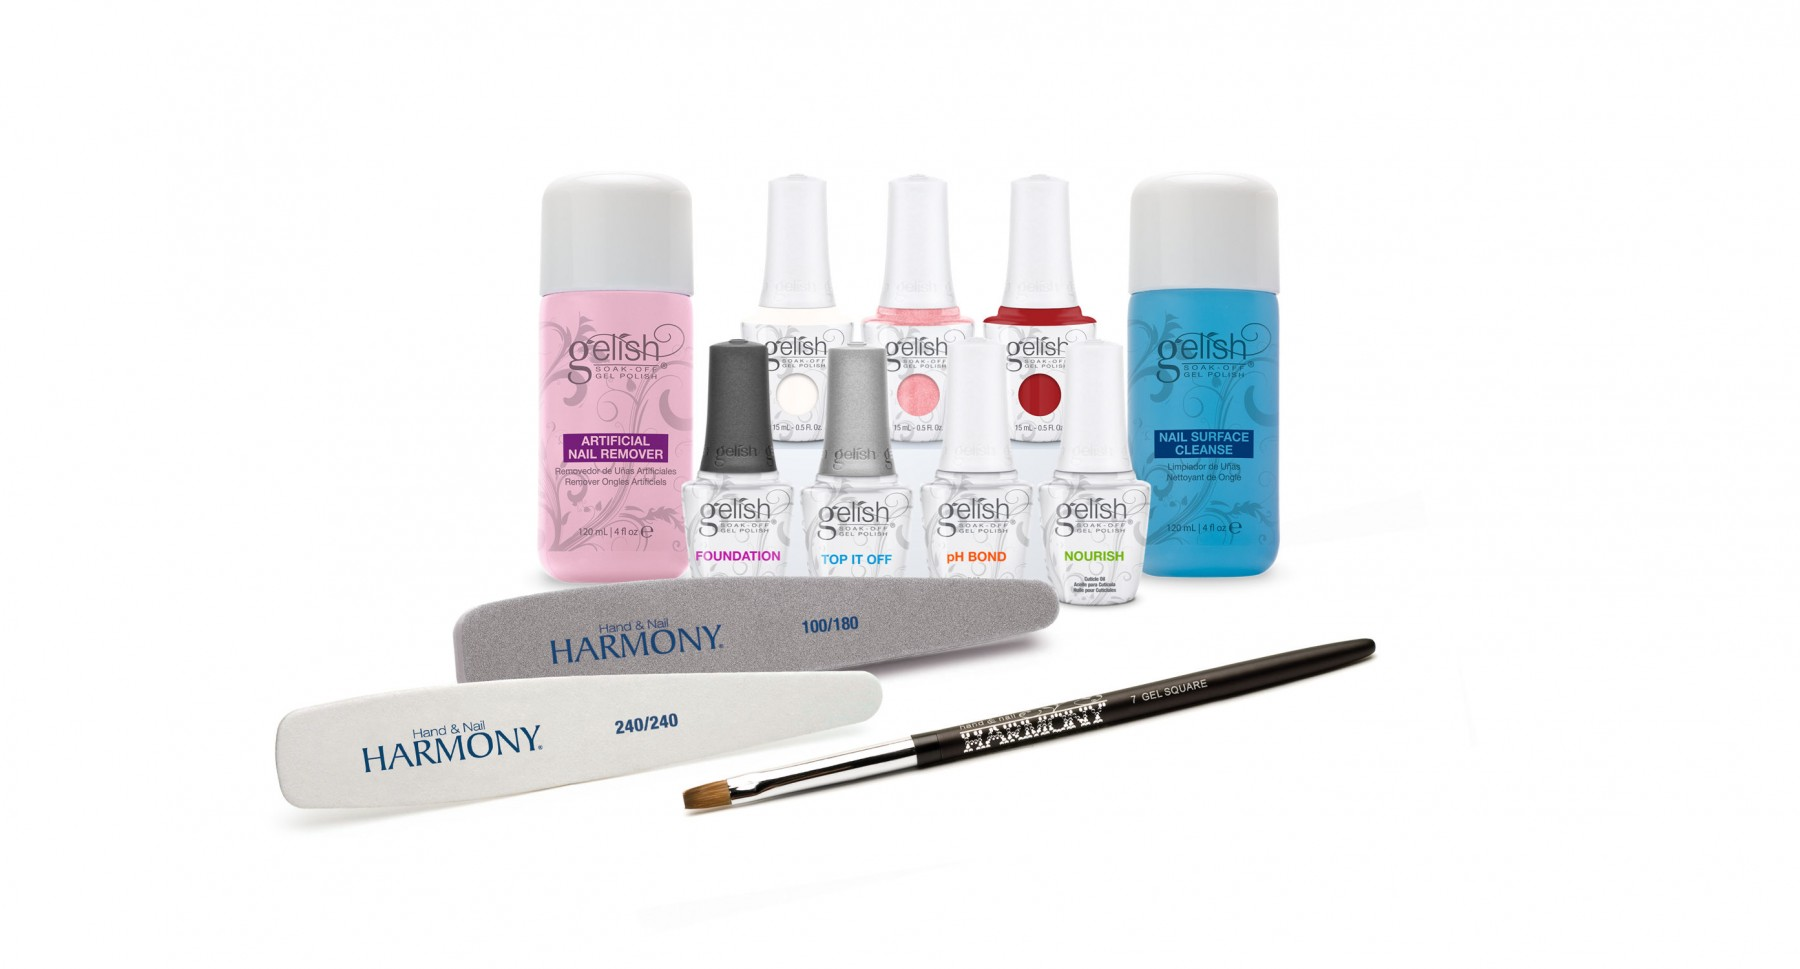 Student Gelish Kit 3 Colour Kit Lamp available separately